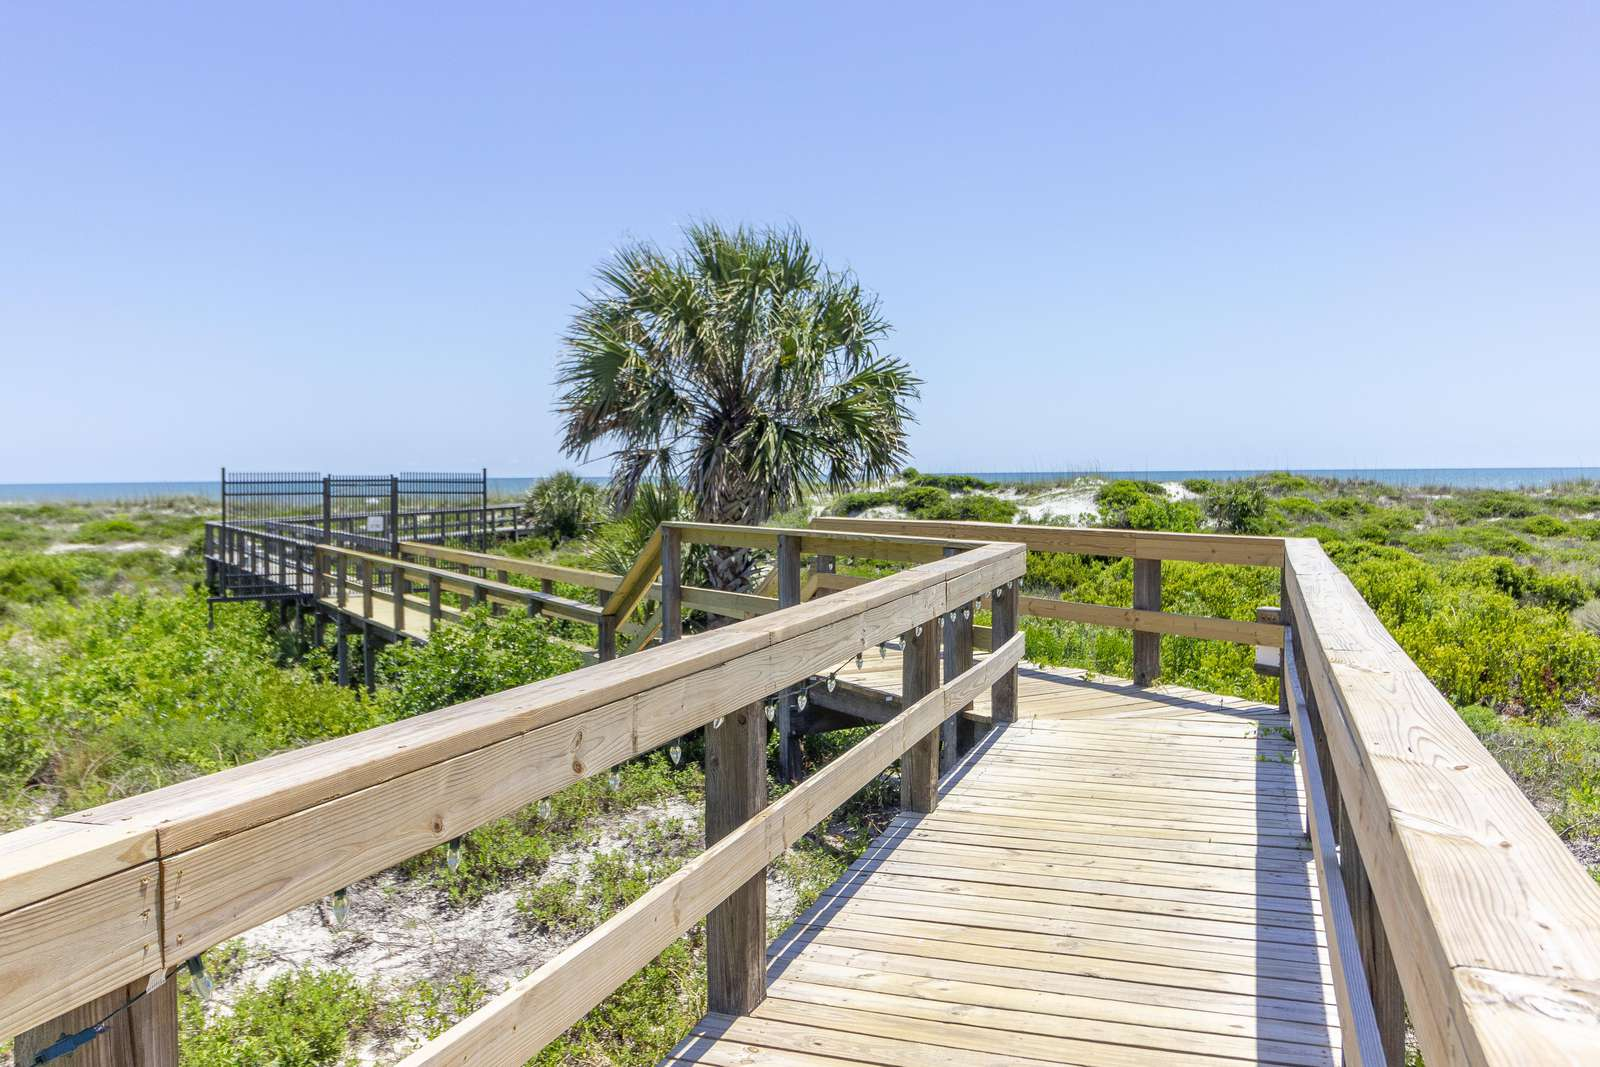 Colony Reef Beach Boardwalk